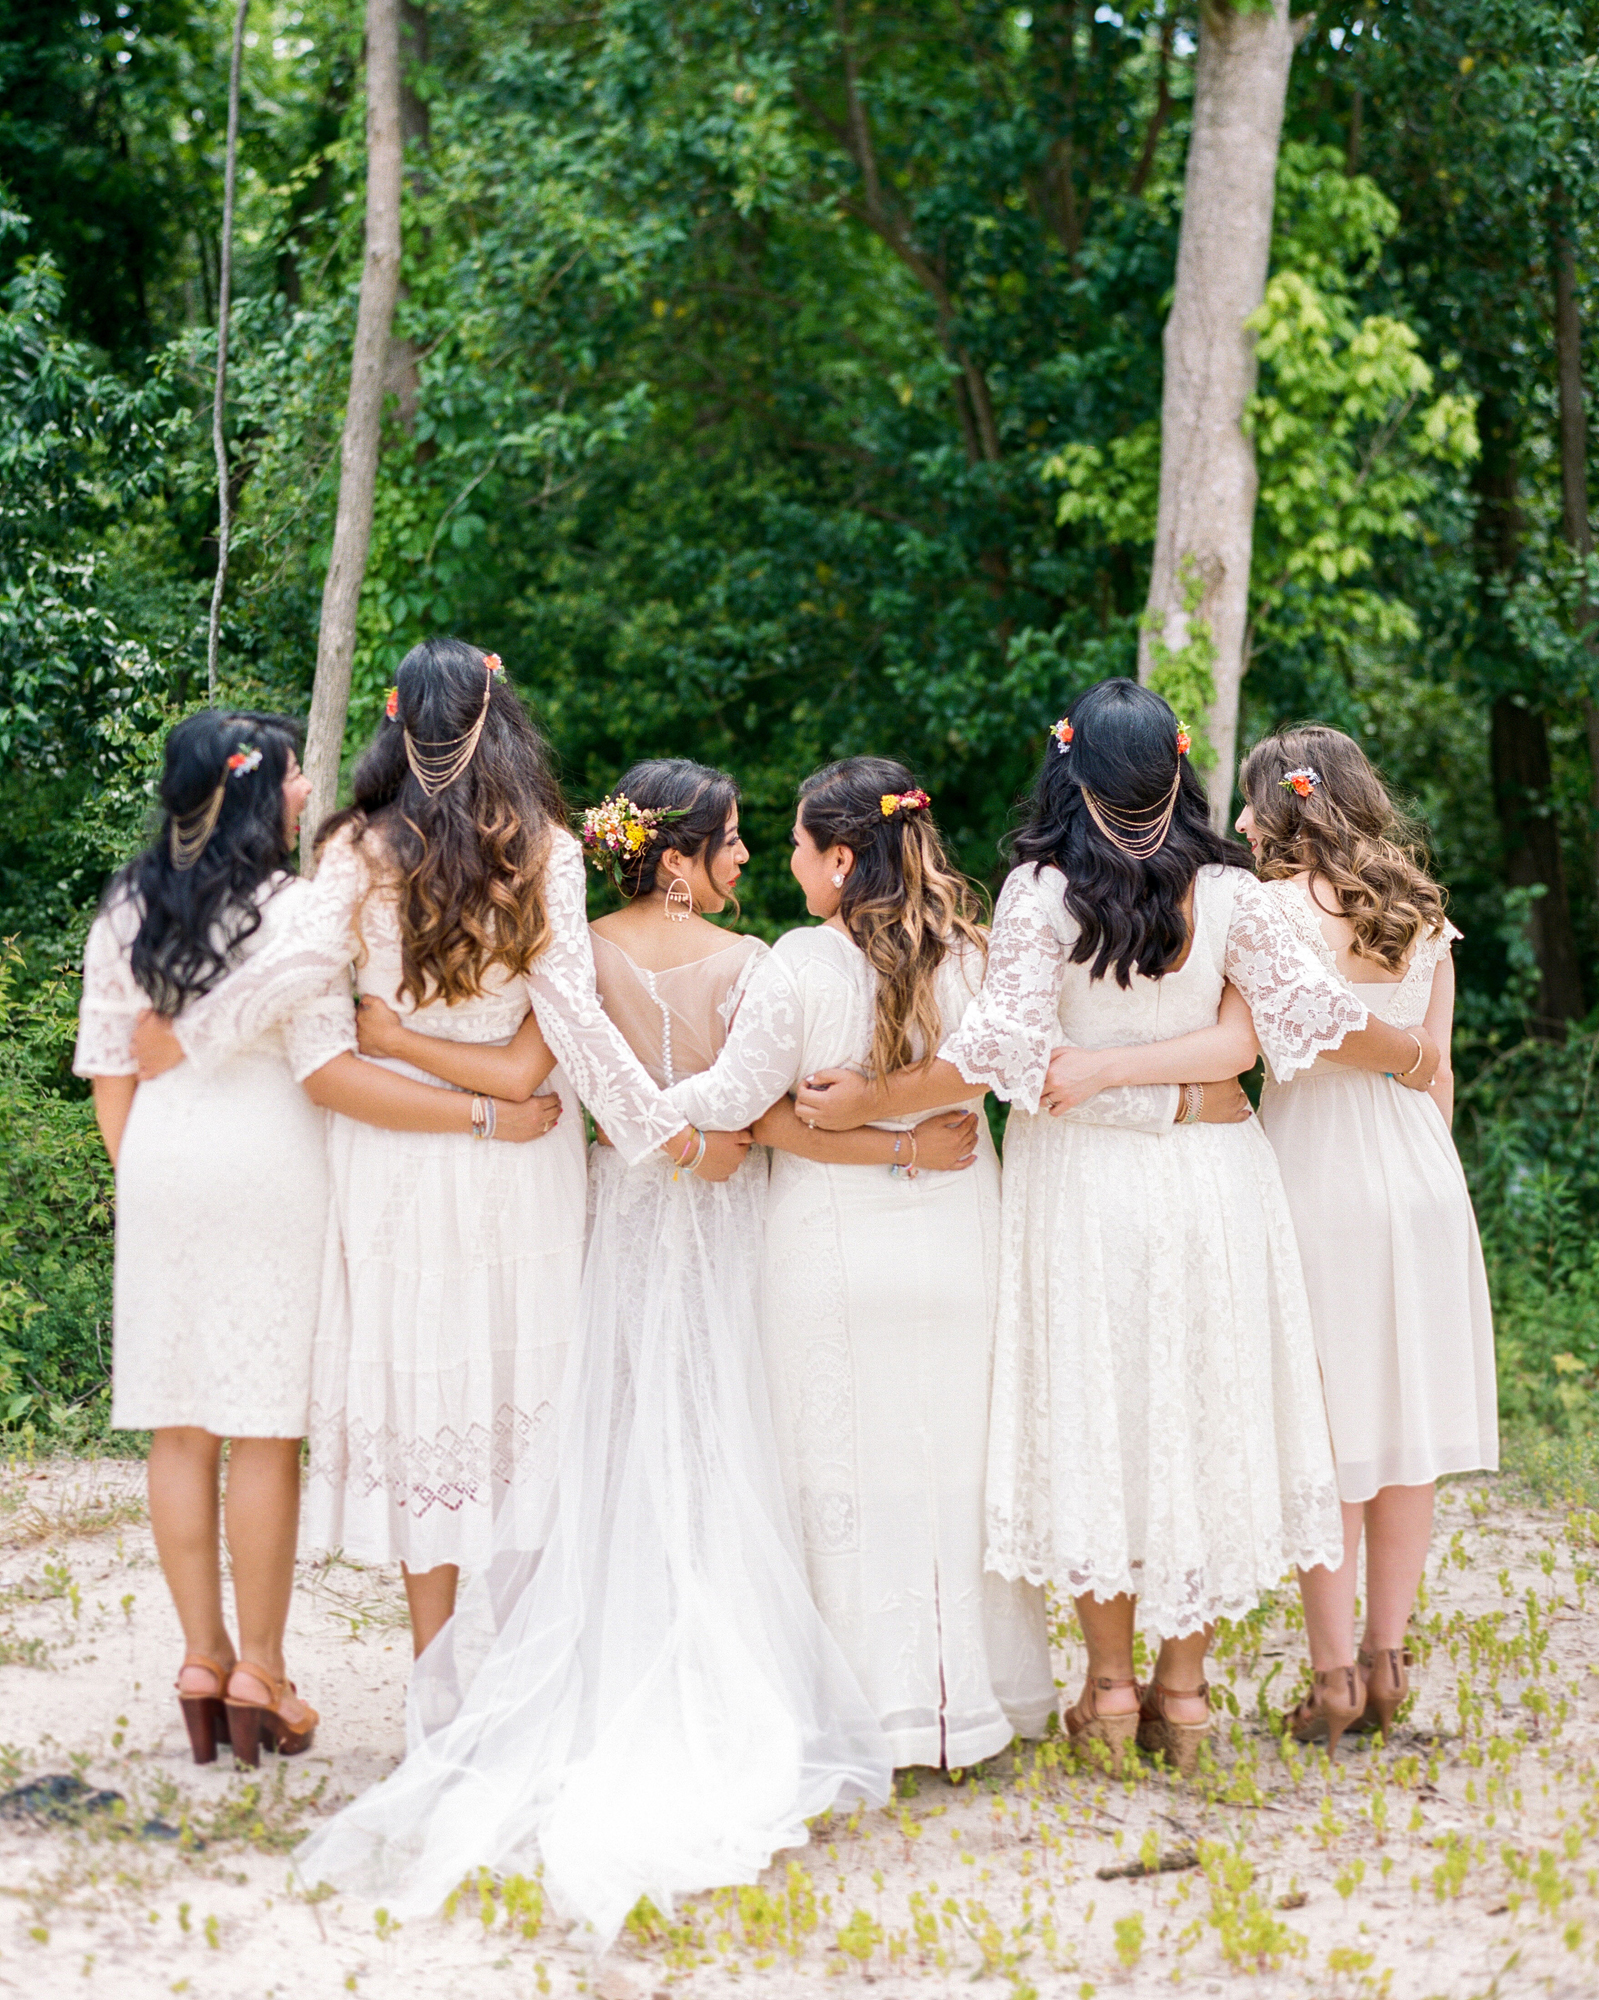 6 Times You Should Stick Up for Yourself as a Bridesmaid